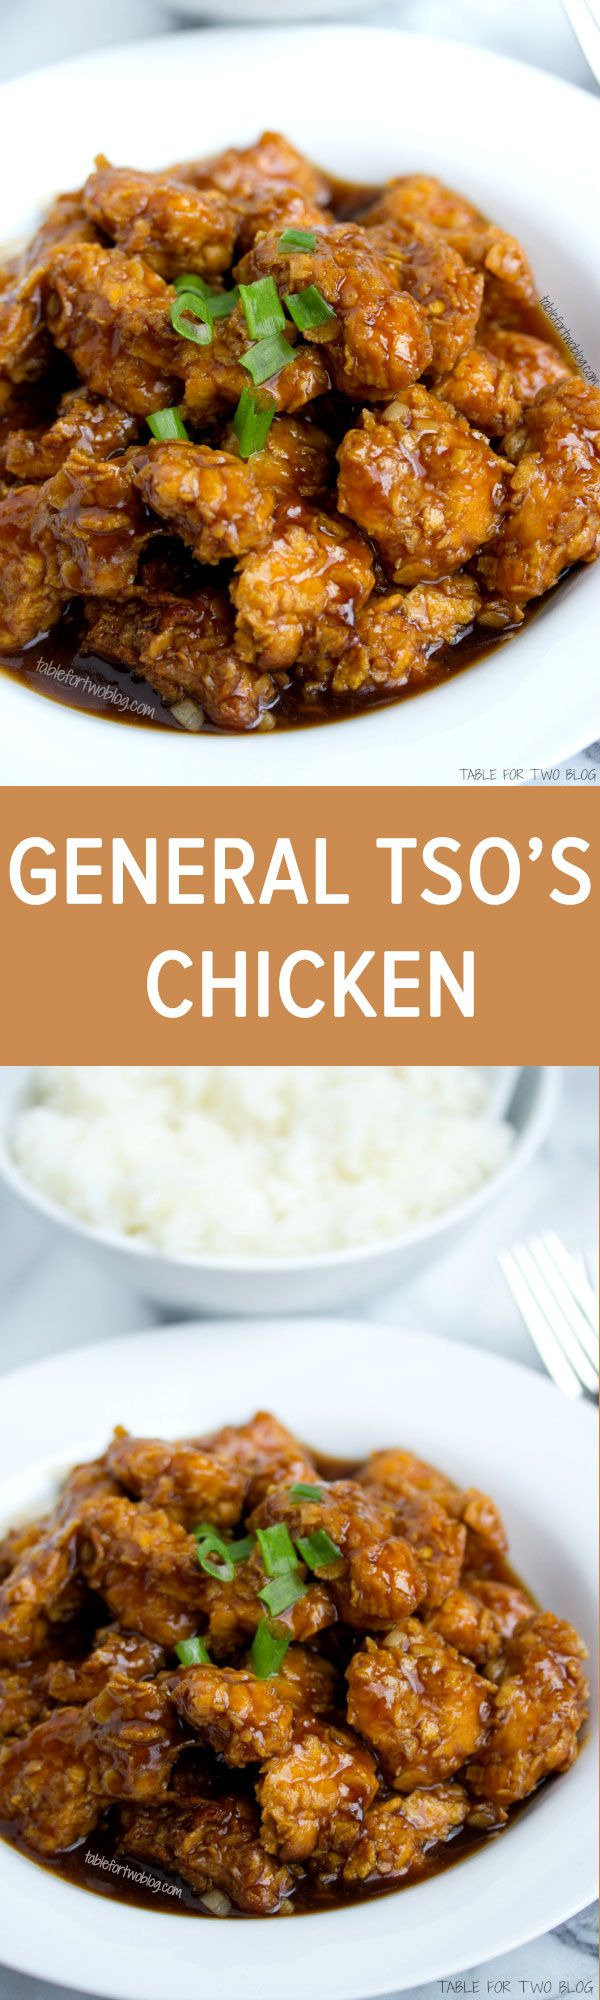 Lightened Up General Tso's Chicken – Table for Two® by Julie Wampler